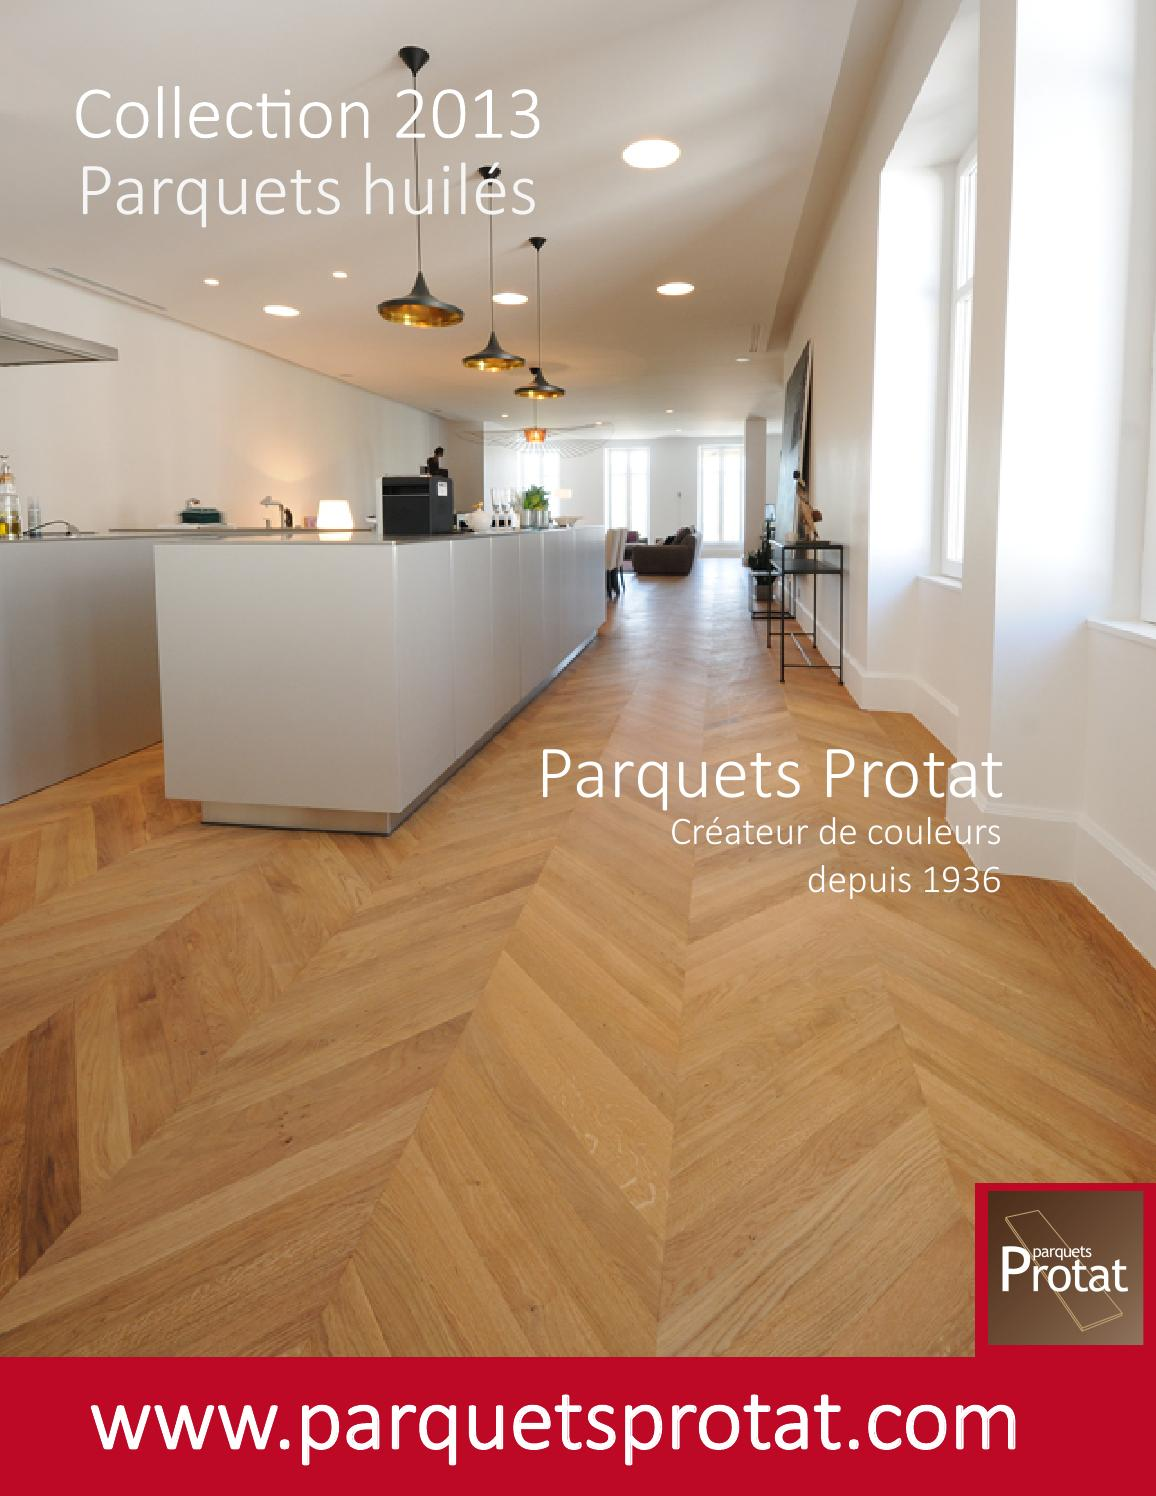 parquets protat collection 2013 parquets huil s by parquets protat issuu. Black Bedroom Furniture Sets. Home Design Ideas